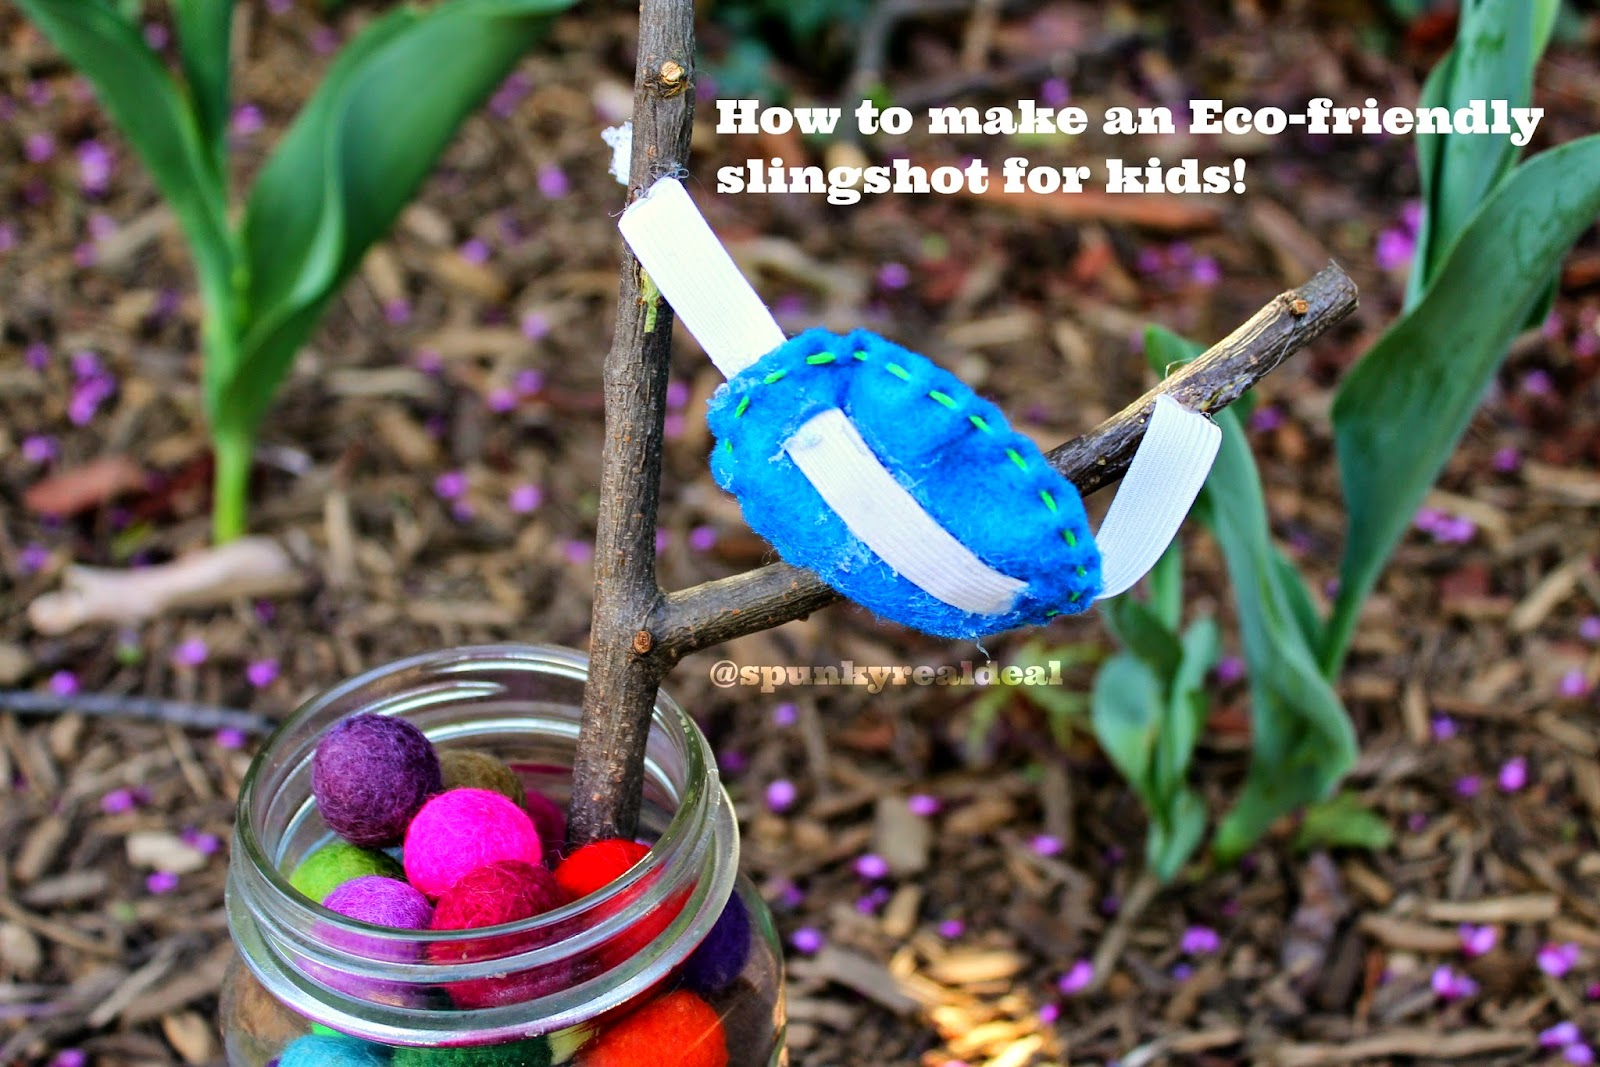 Eco-friendly Slingshot for kids